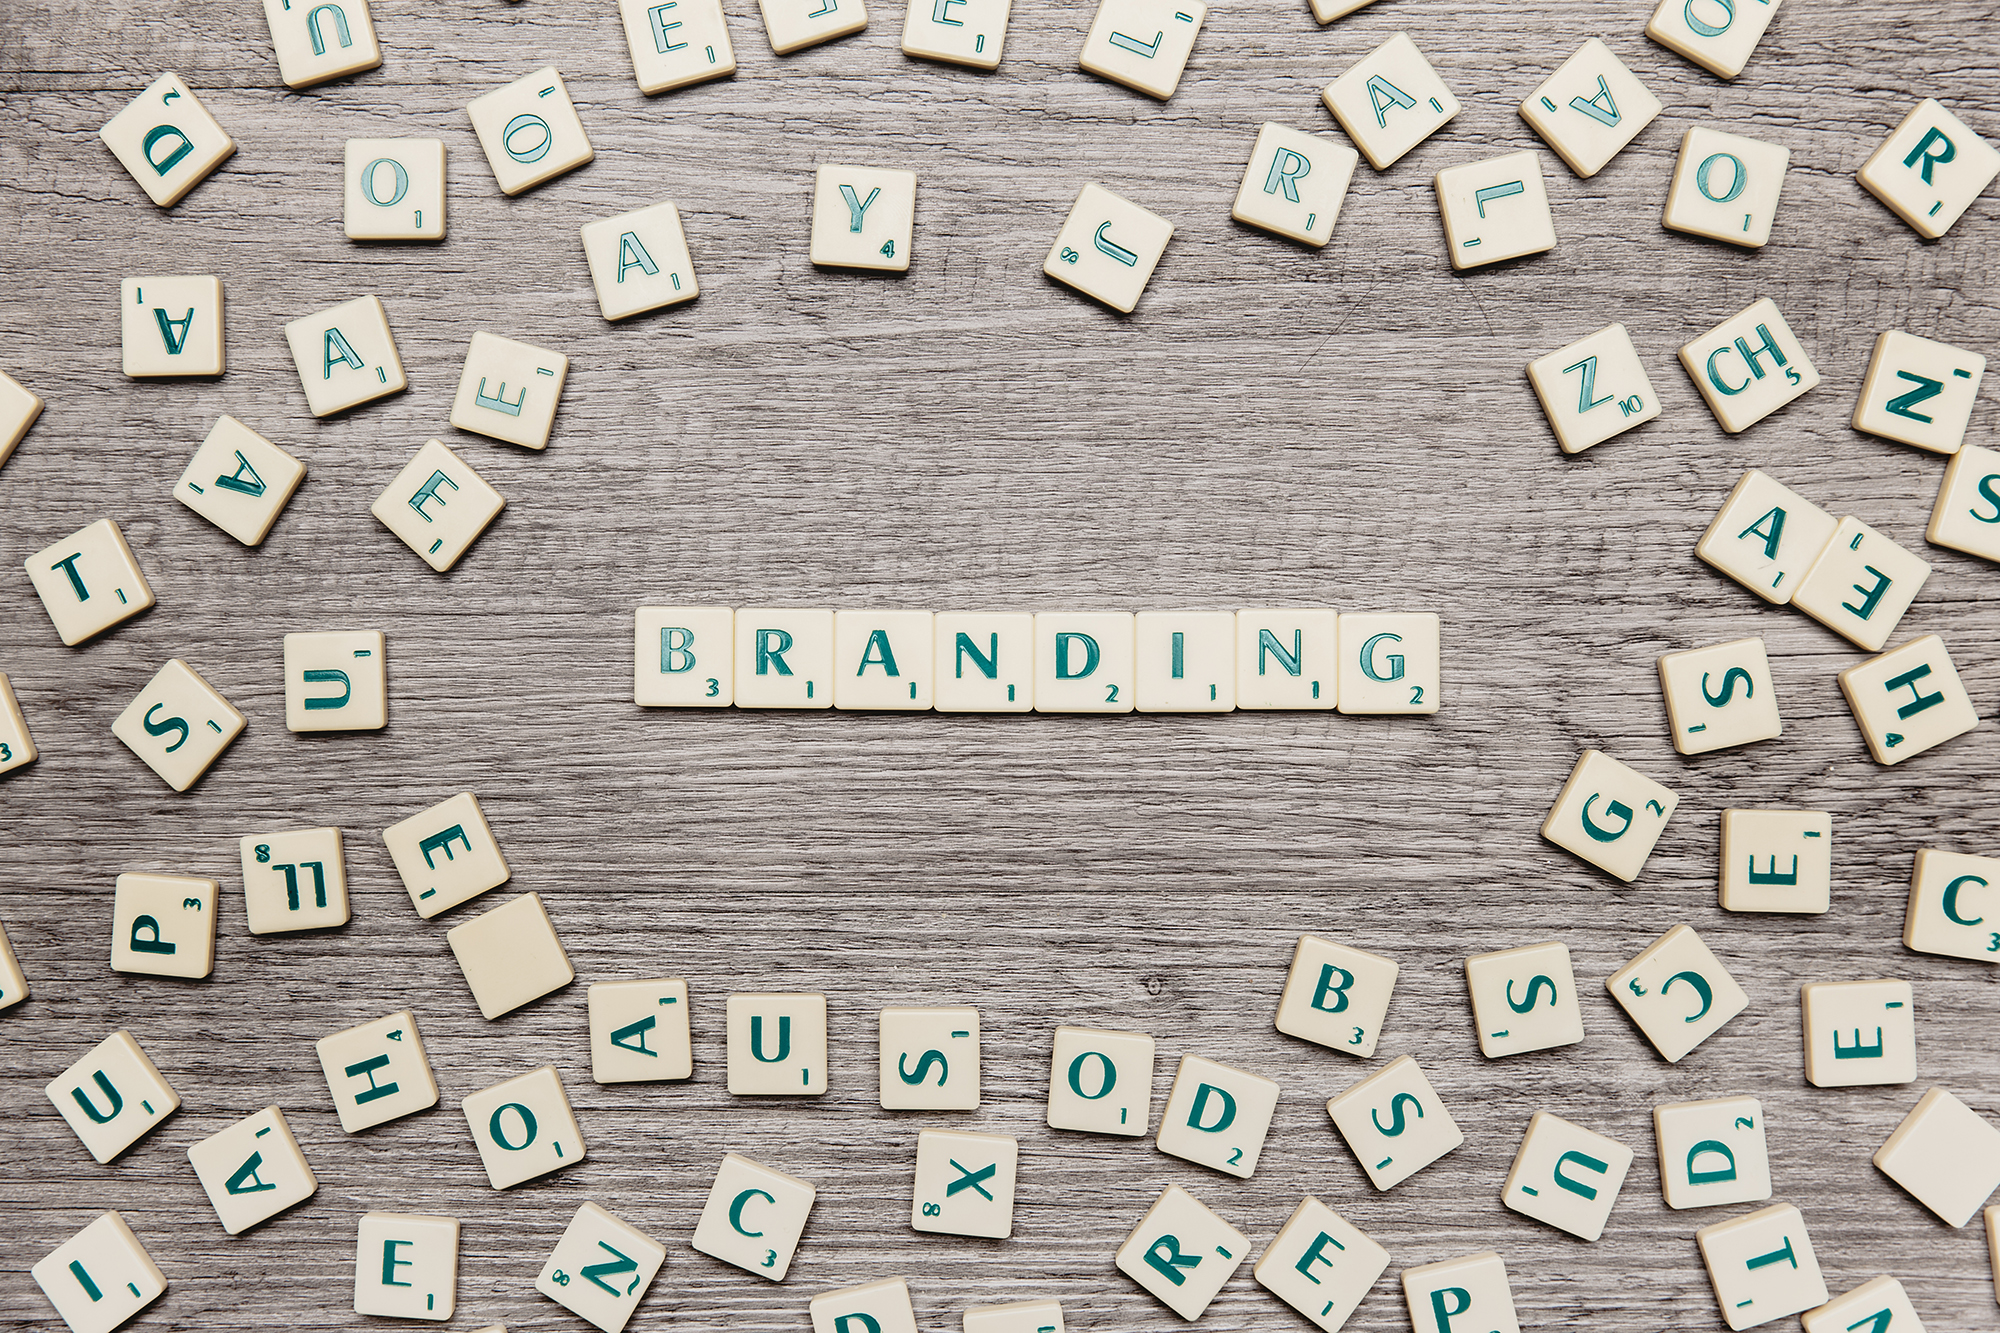 RE-BRANDING - Got a well established company but need a re-brand? Whether you simply want a colour change or a more substantial update, we are here to help. Established brands can often be given a sympathetic face lift while retaining their basic identity and familiarity.